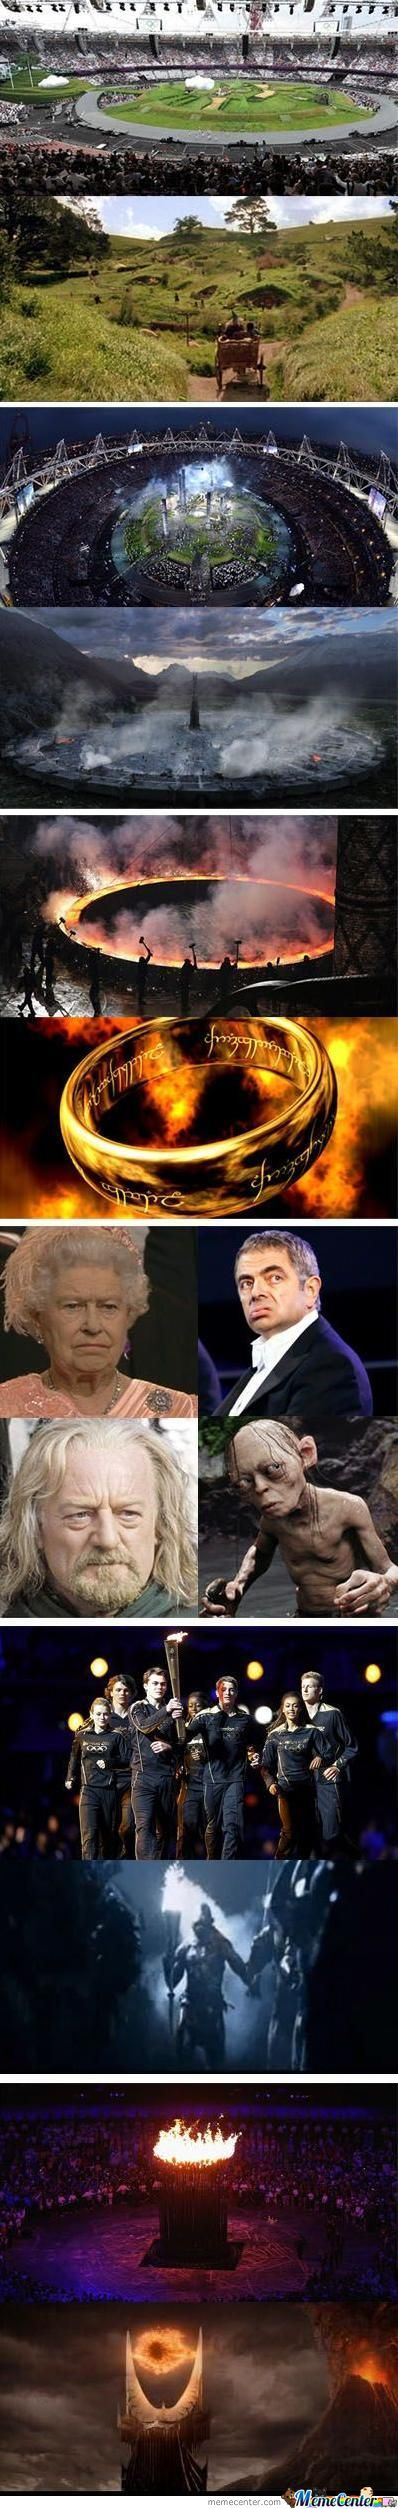 The Opening Ceremony Was The Lord Of The Rings